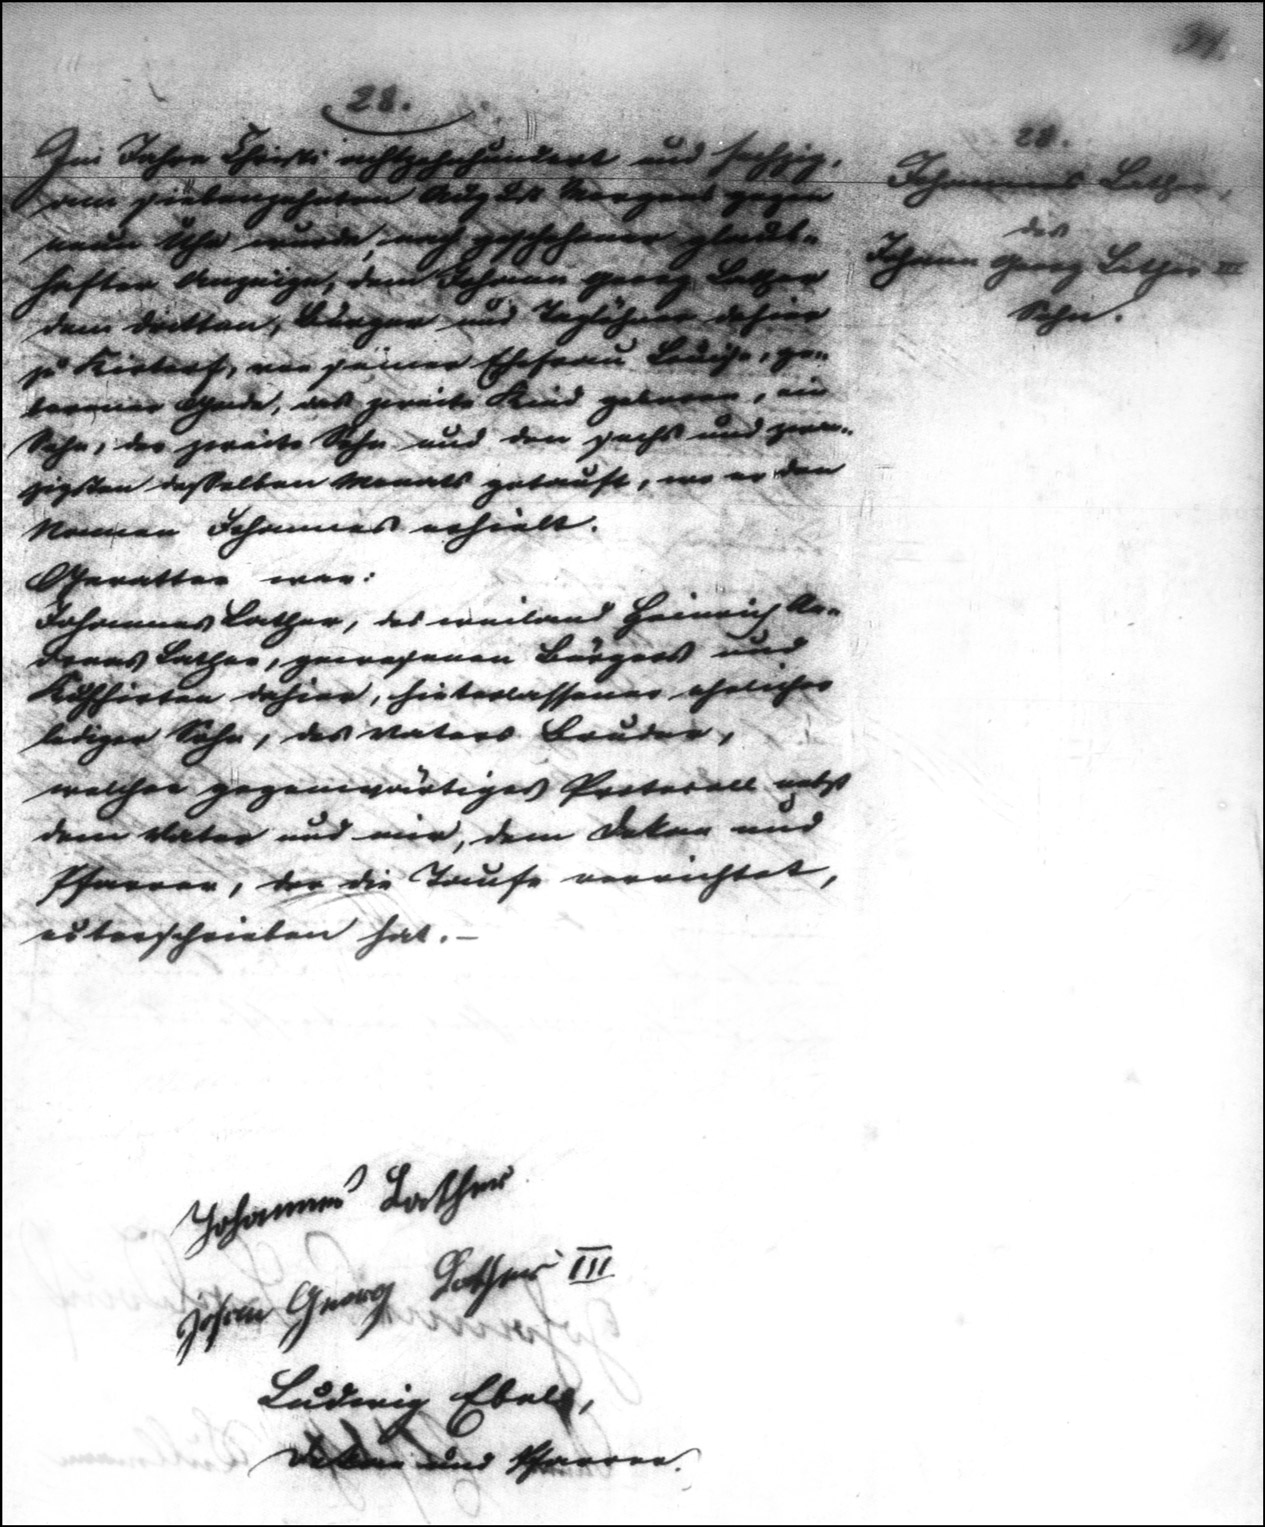 The Birth and Baptismal Record of Johannes Lather - 1860